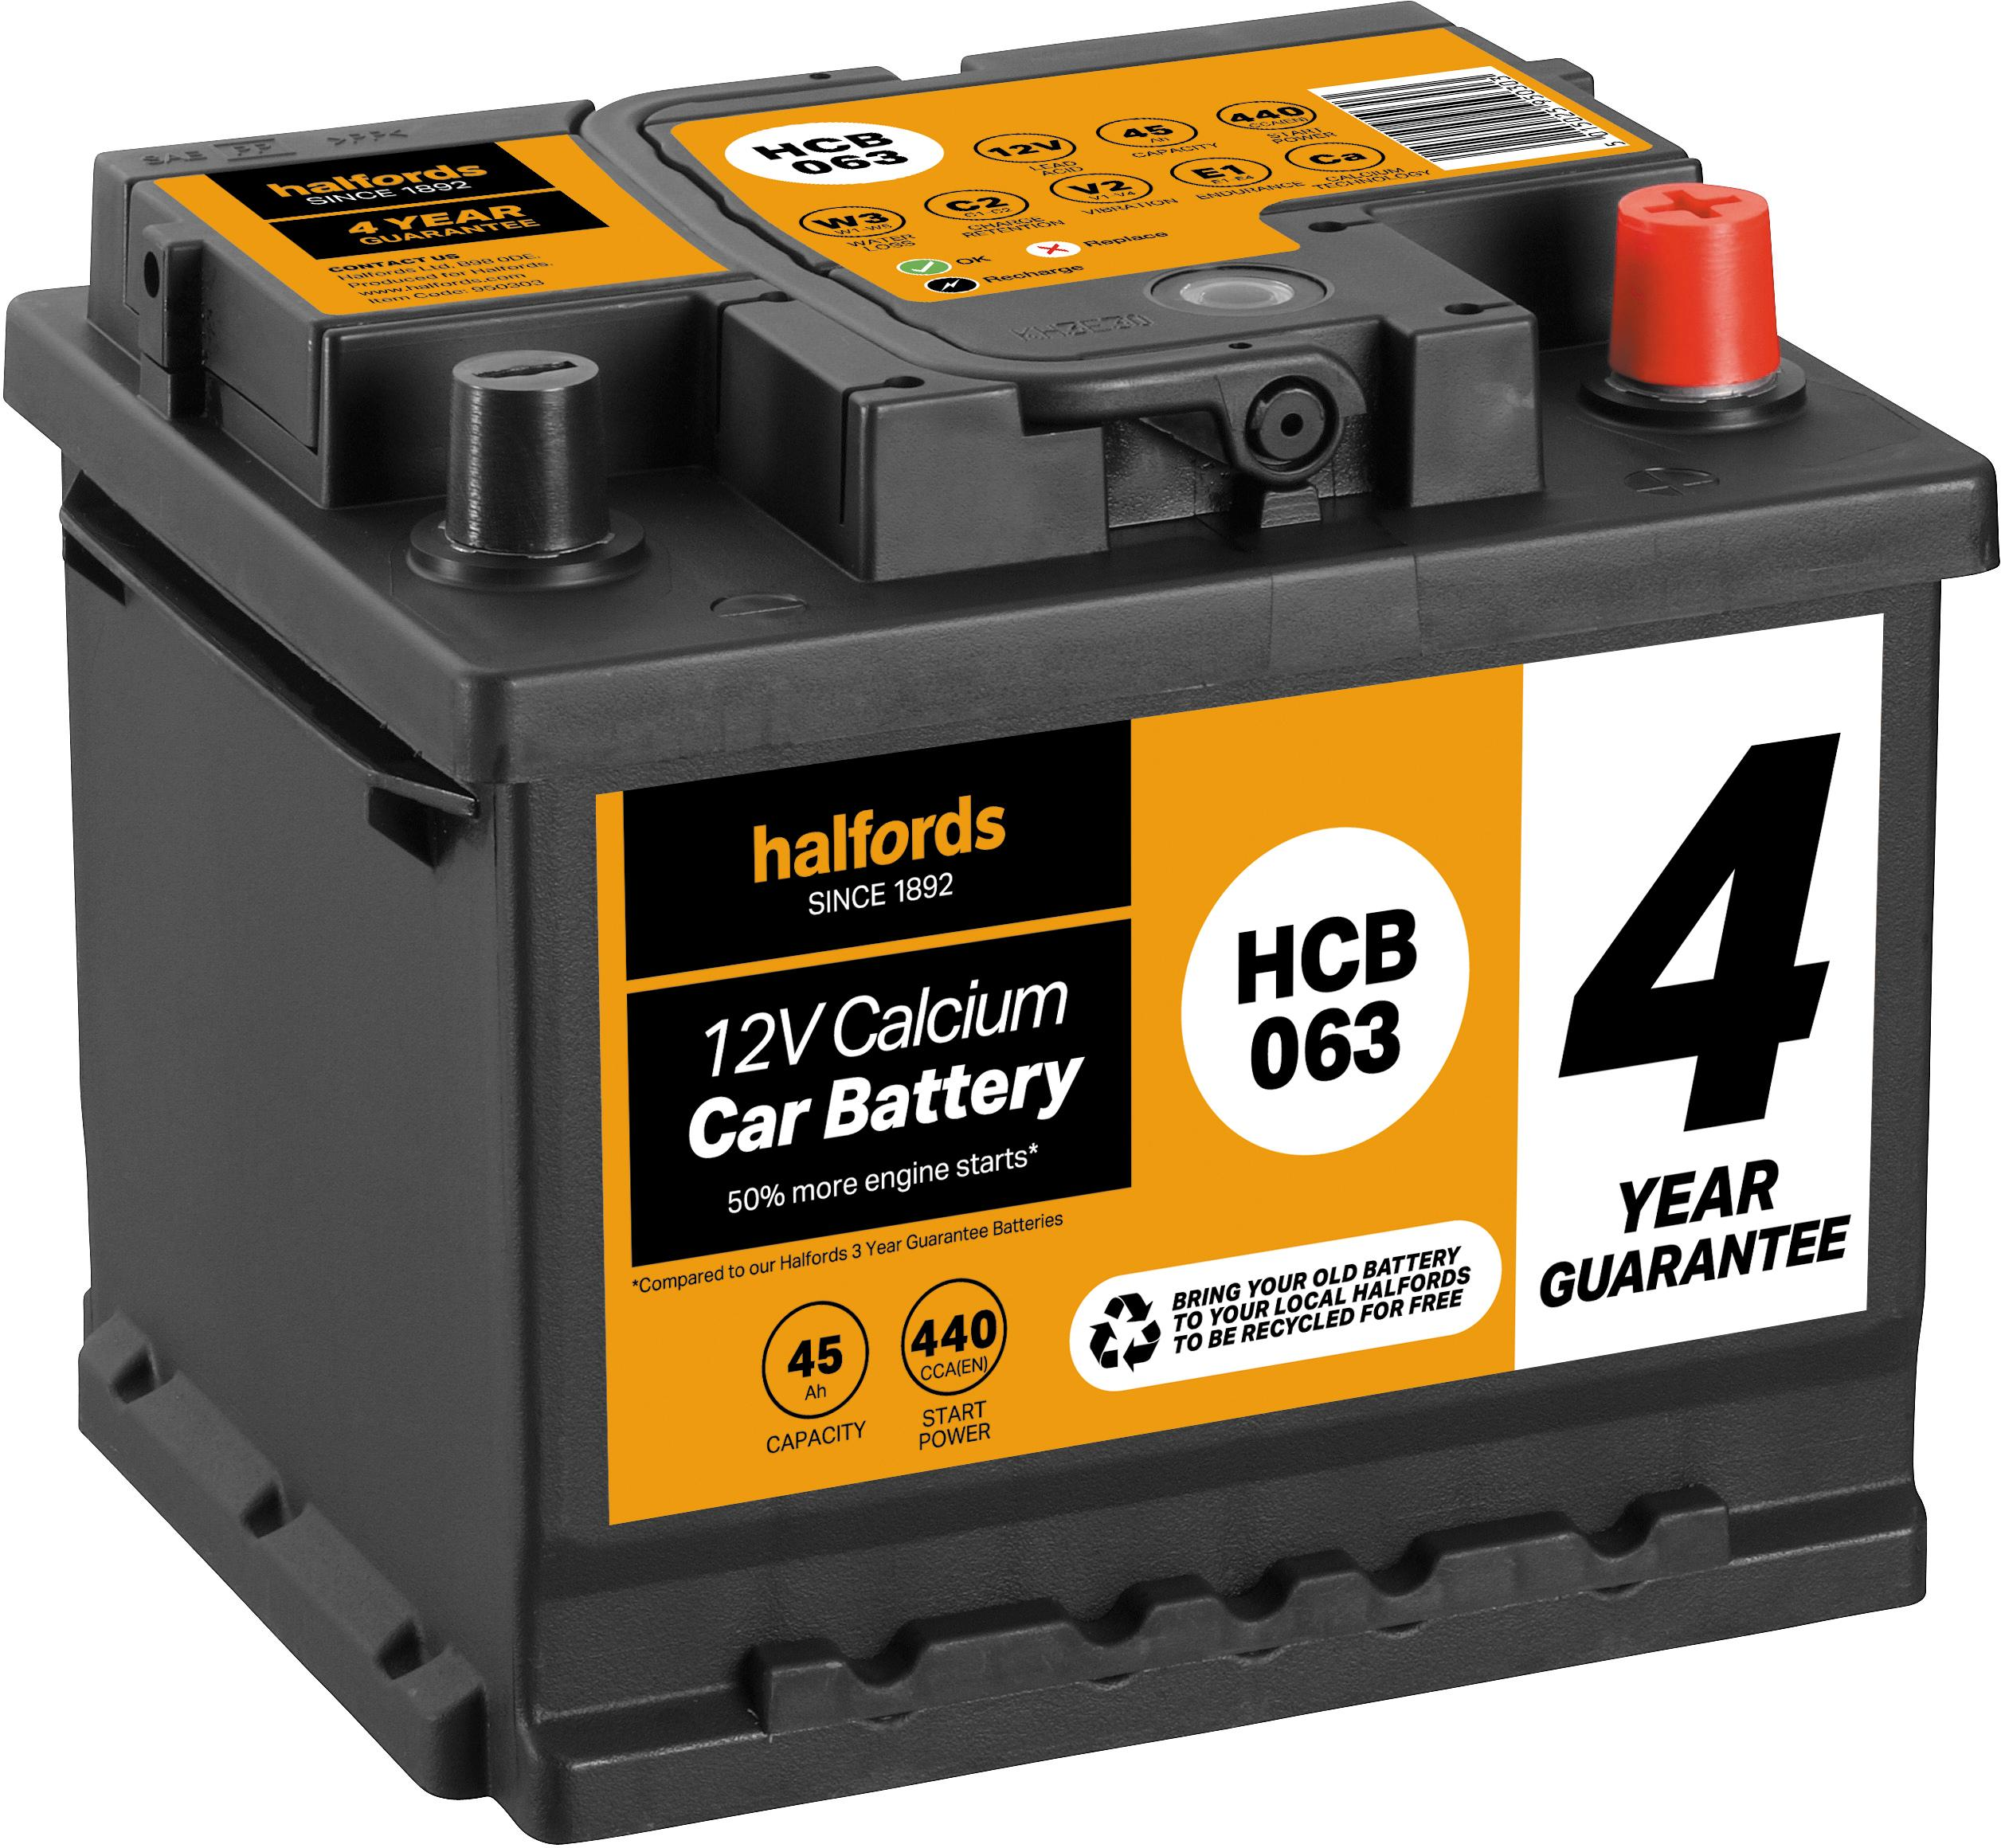 Titanium 334 Car Battery 91Ah - Fast & Free Delivery